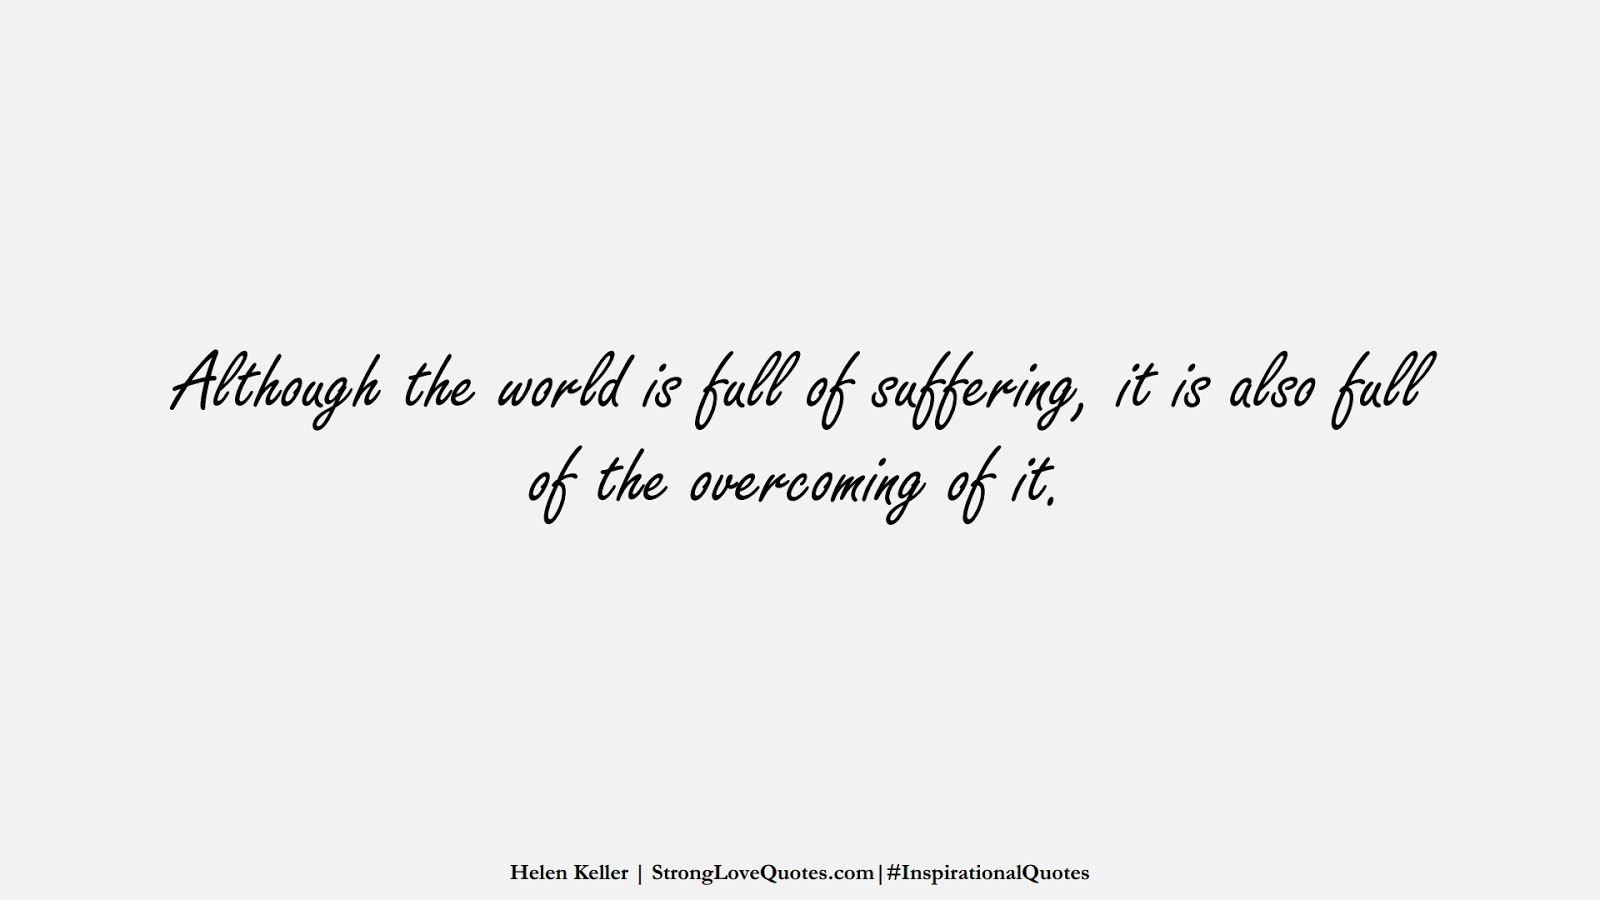 Although the world is full of suffering, it is also full of the overcoming of it. (Helen Keller);  #InspirationalQuotes